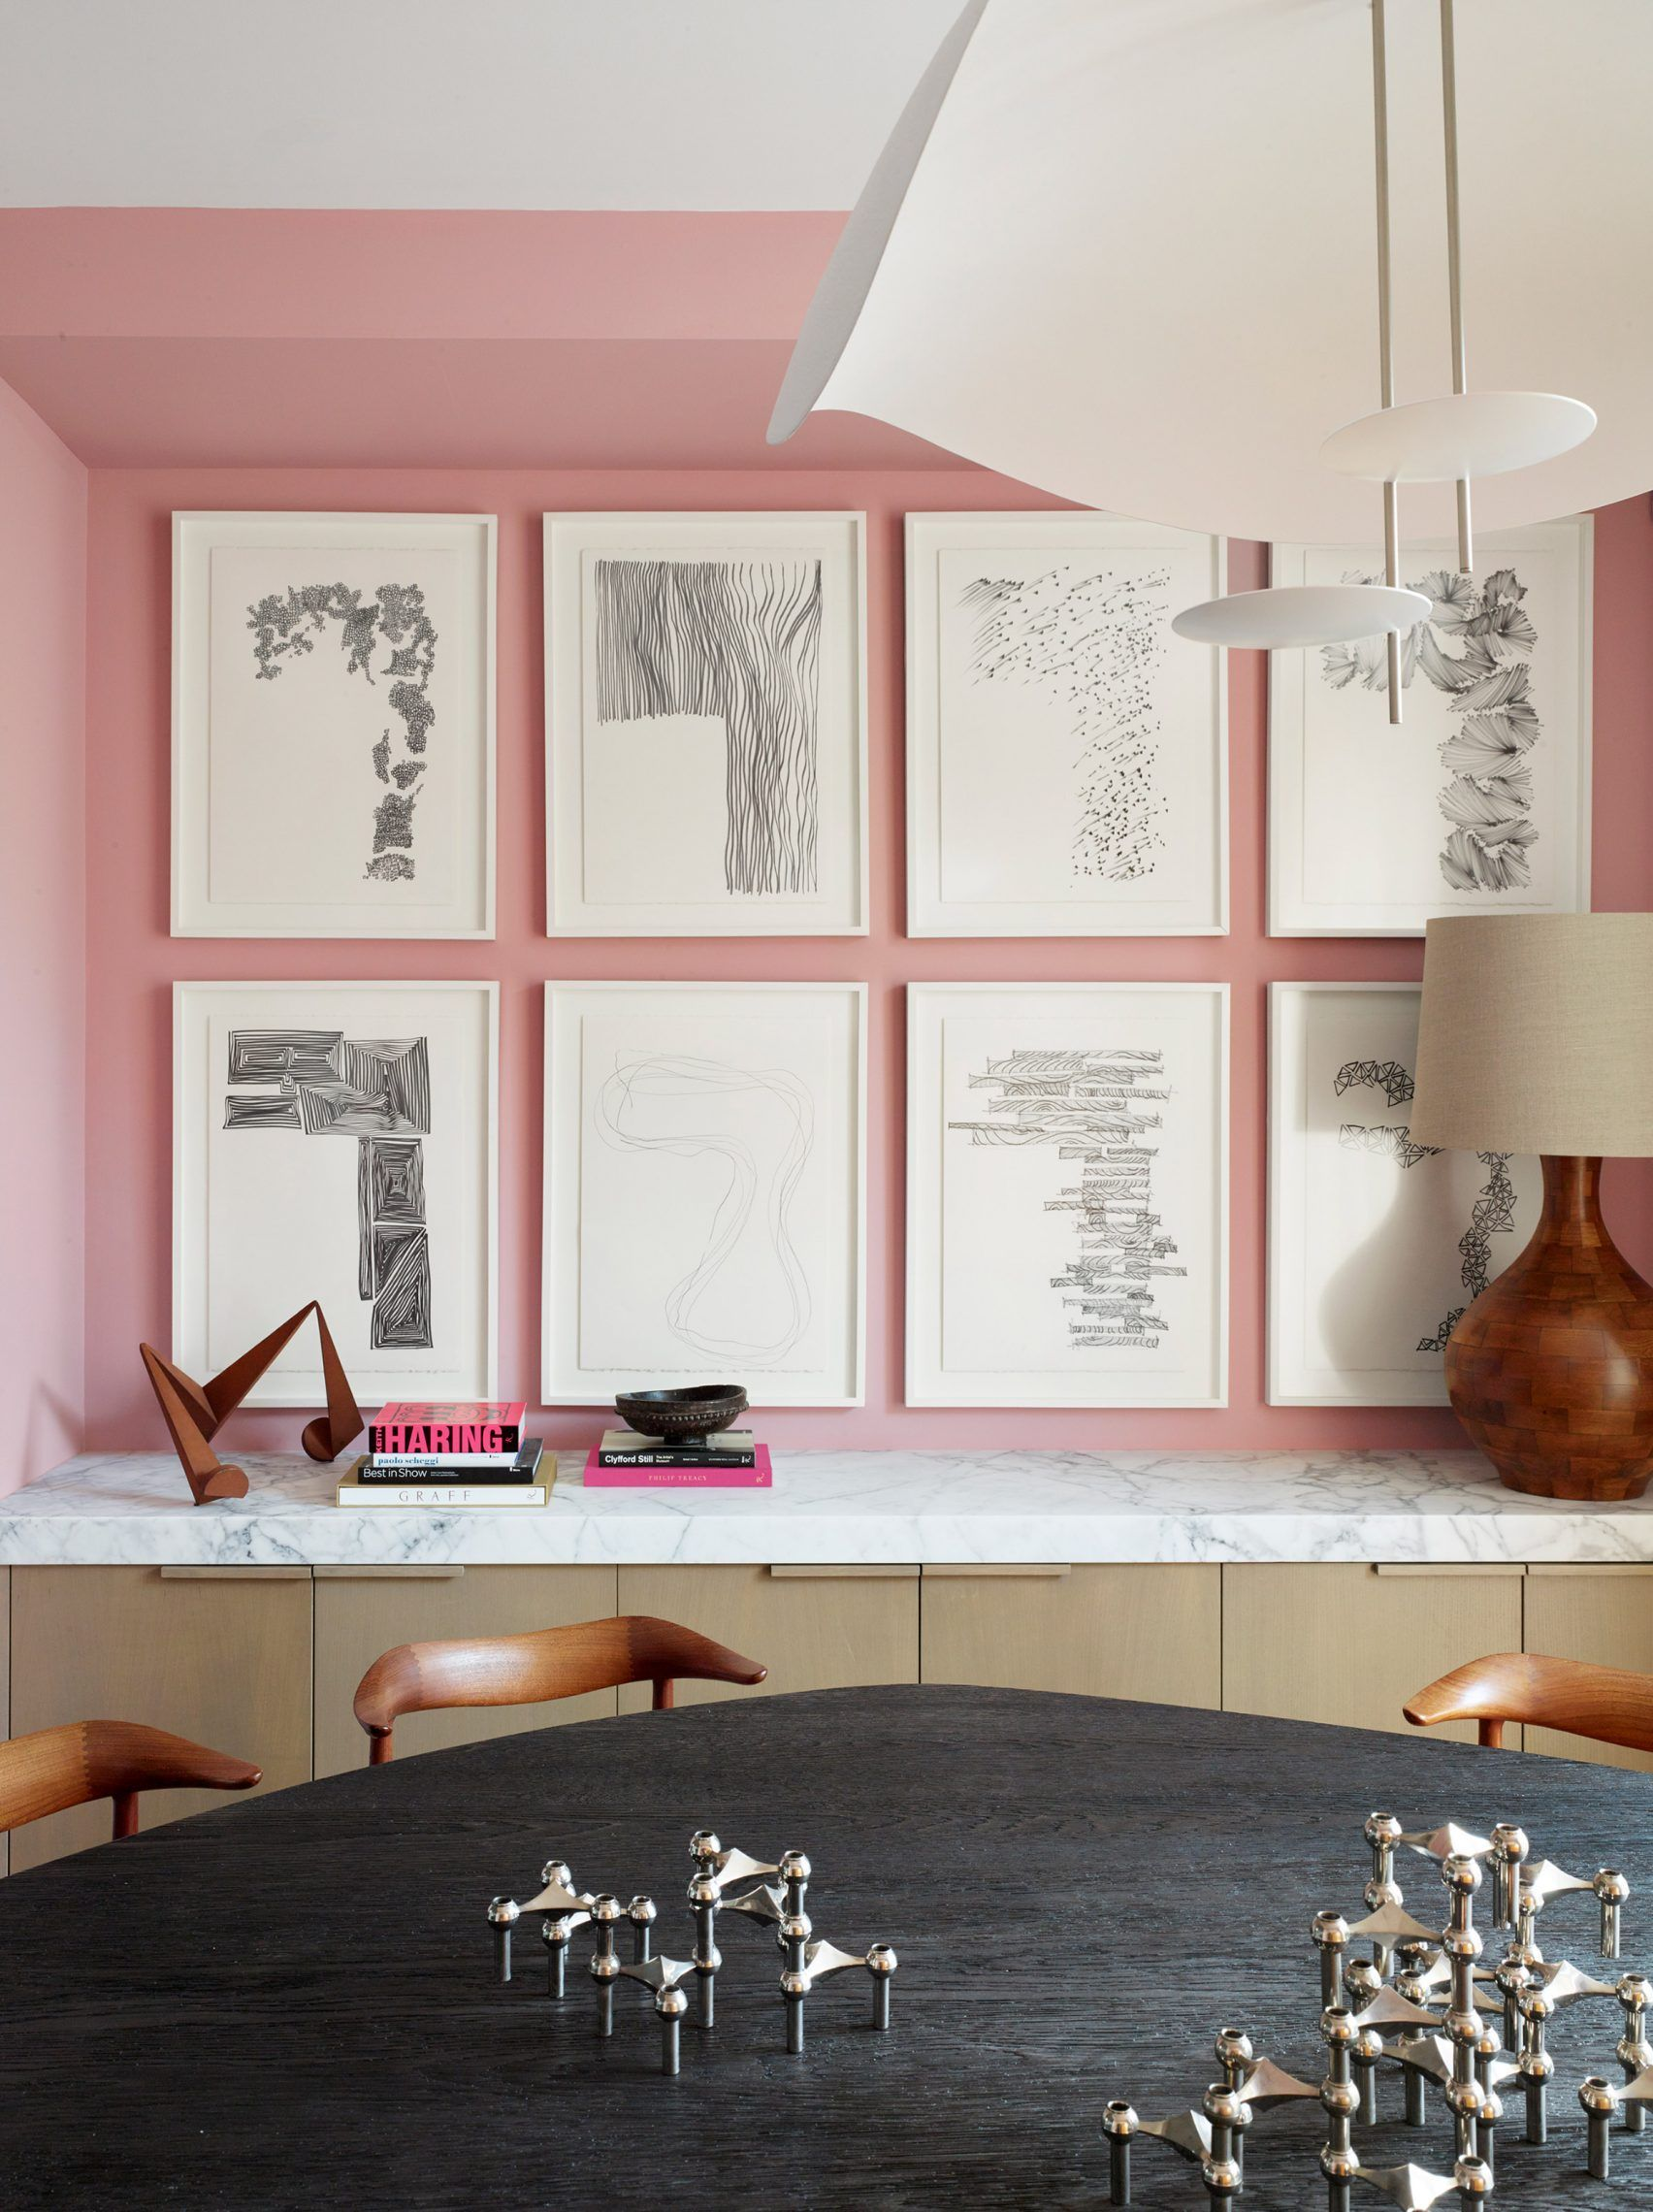 Modern Townhouse Townhouse Designs San Francisco: San Francisco Residence By Jamie Bush (With Images)